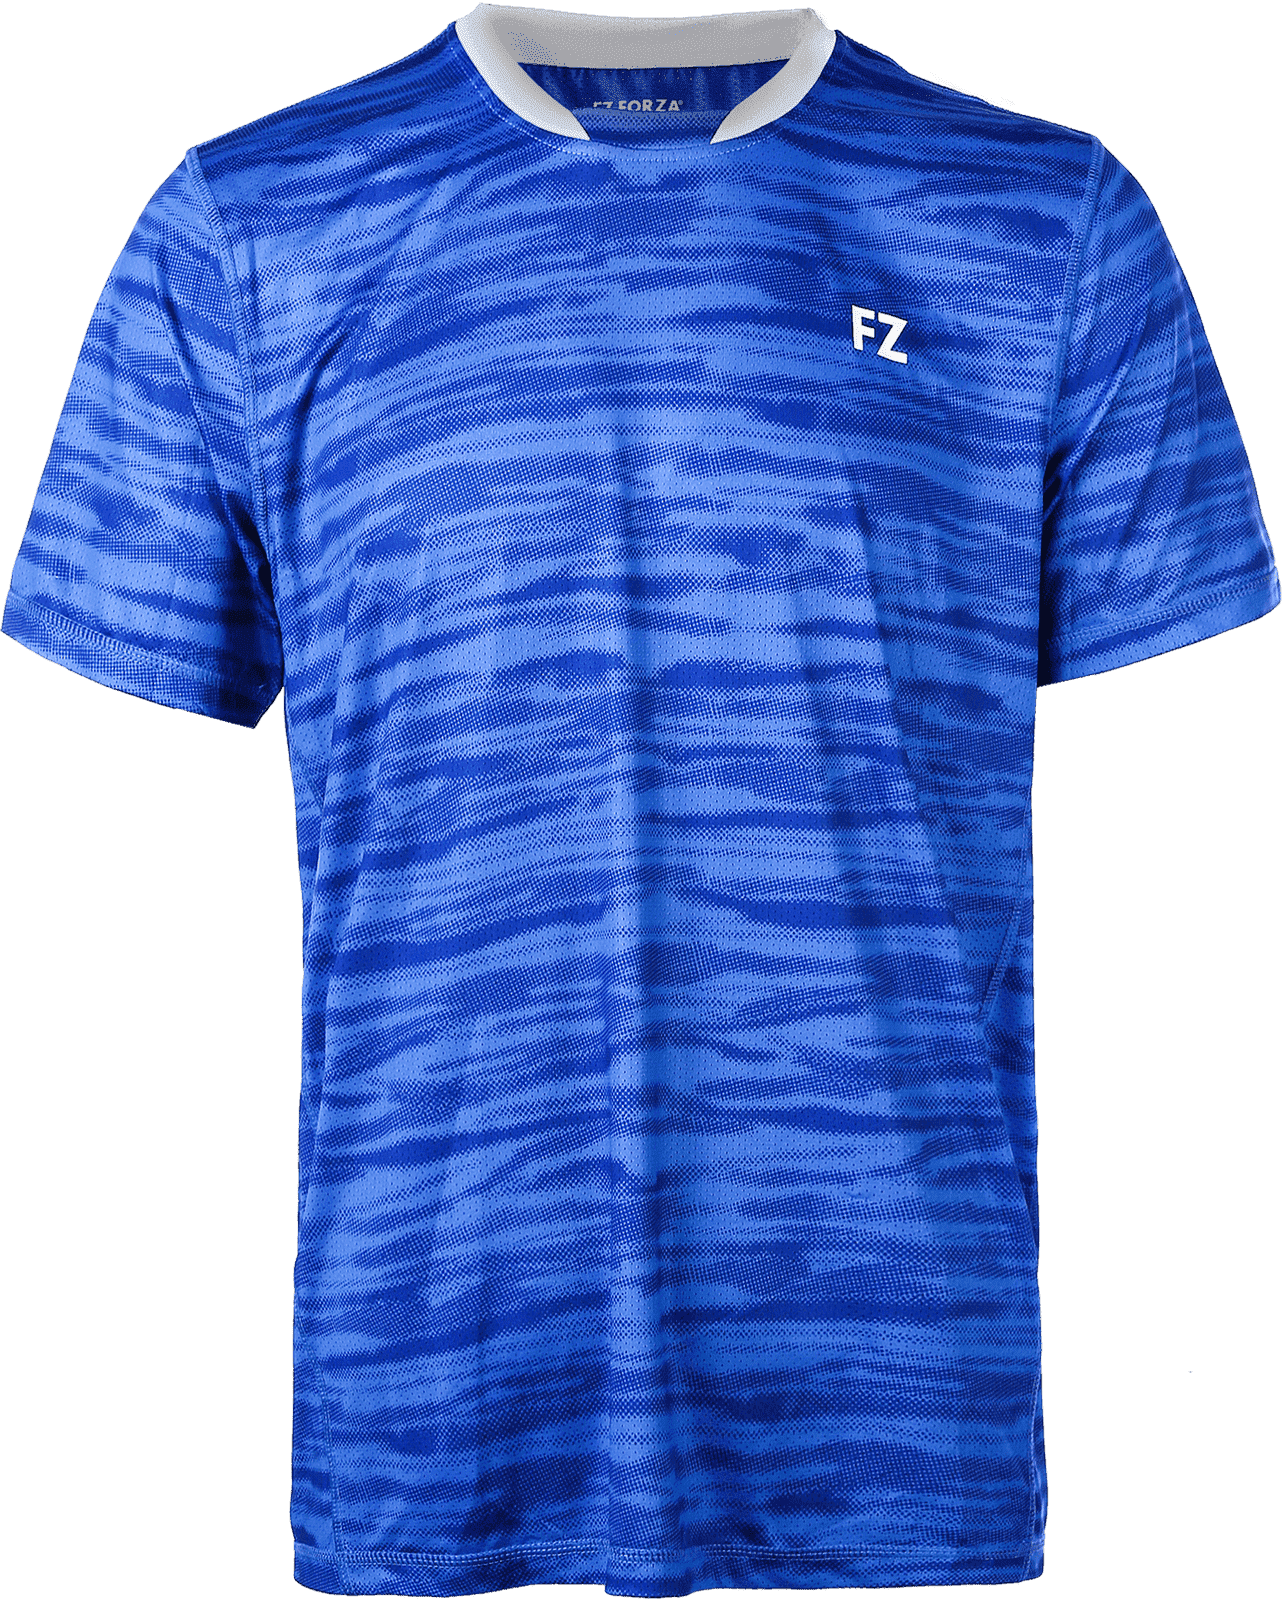 Forza Malone M S/S Tee, 2081 Blue Aster